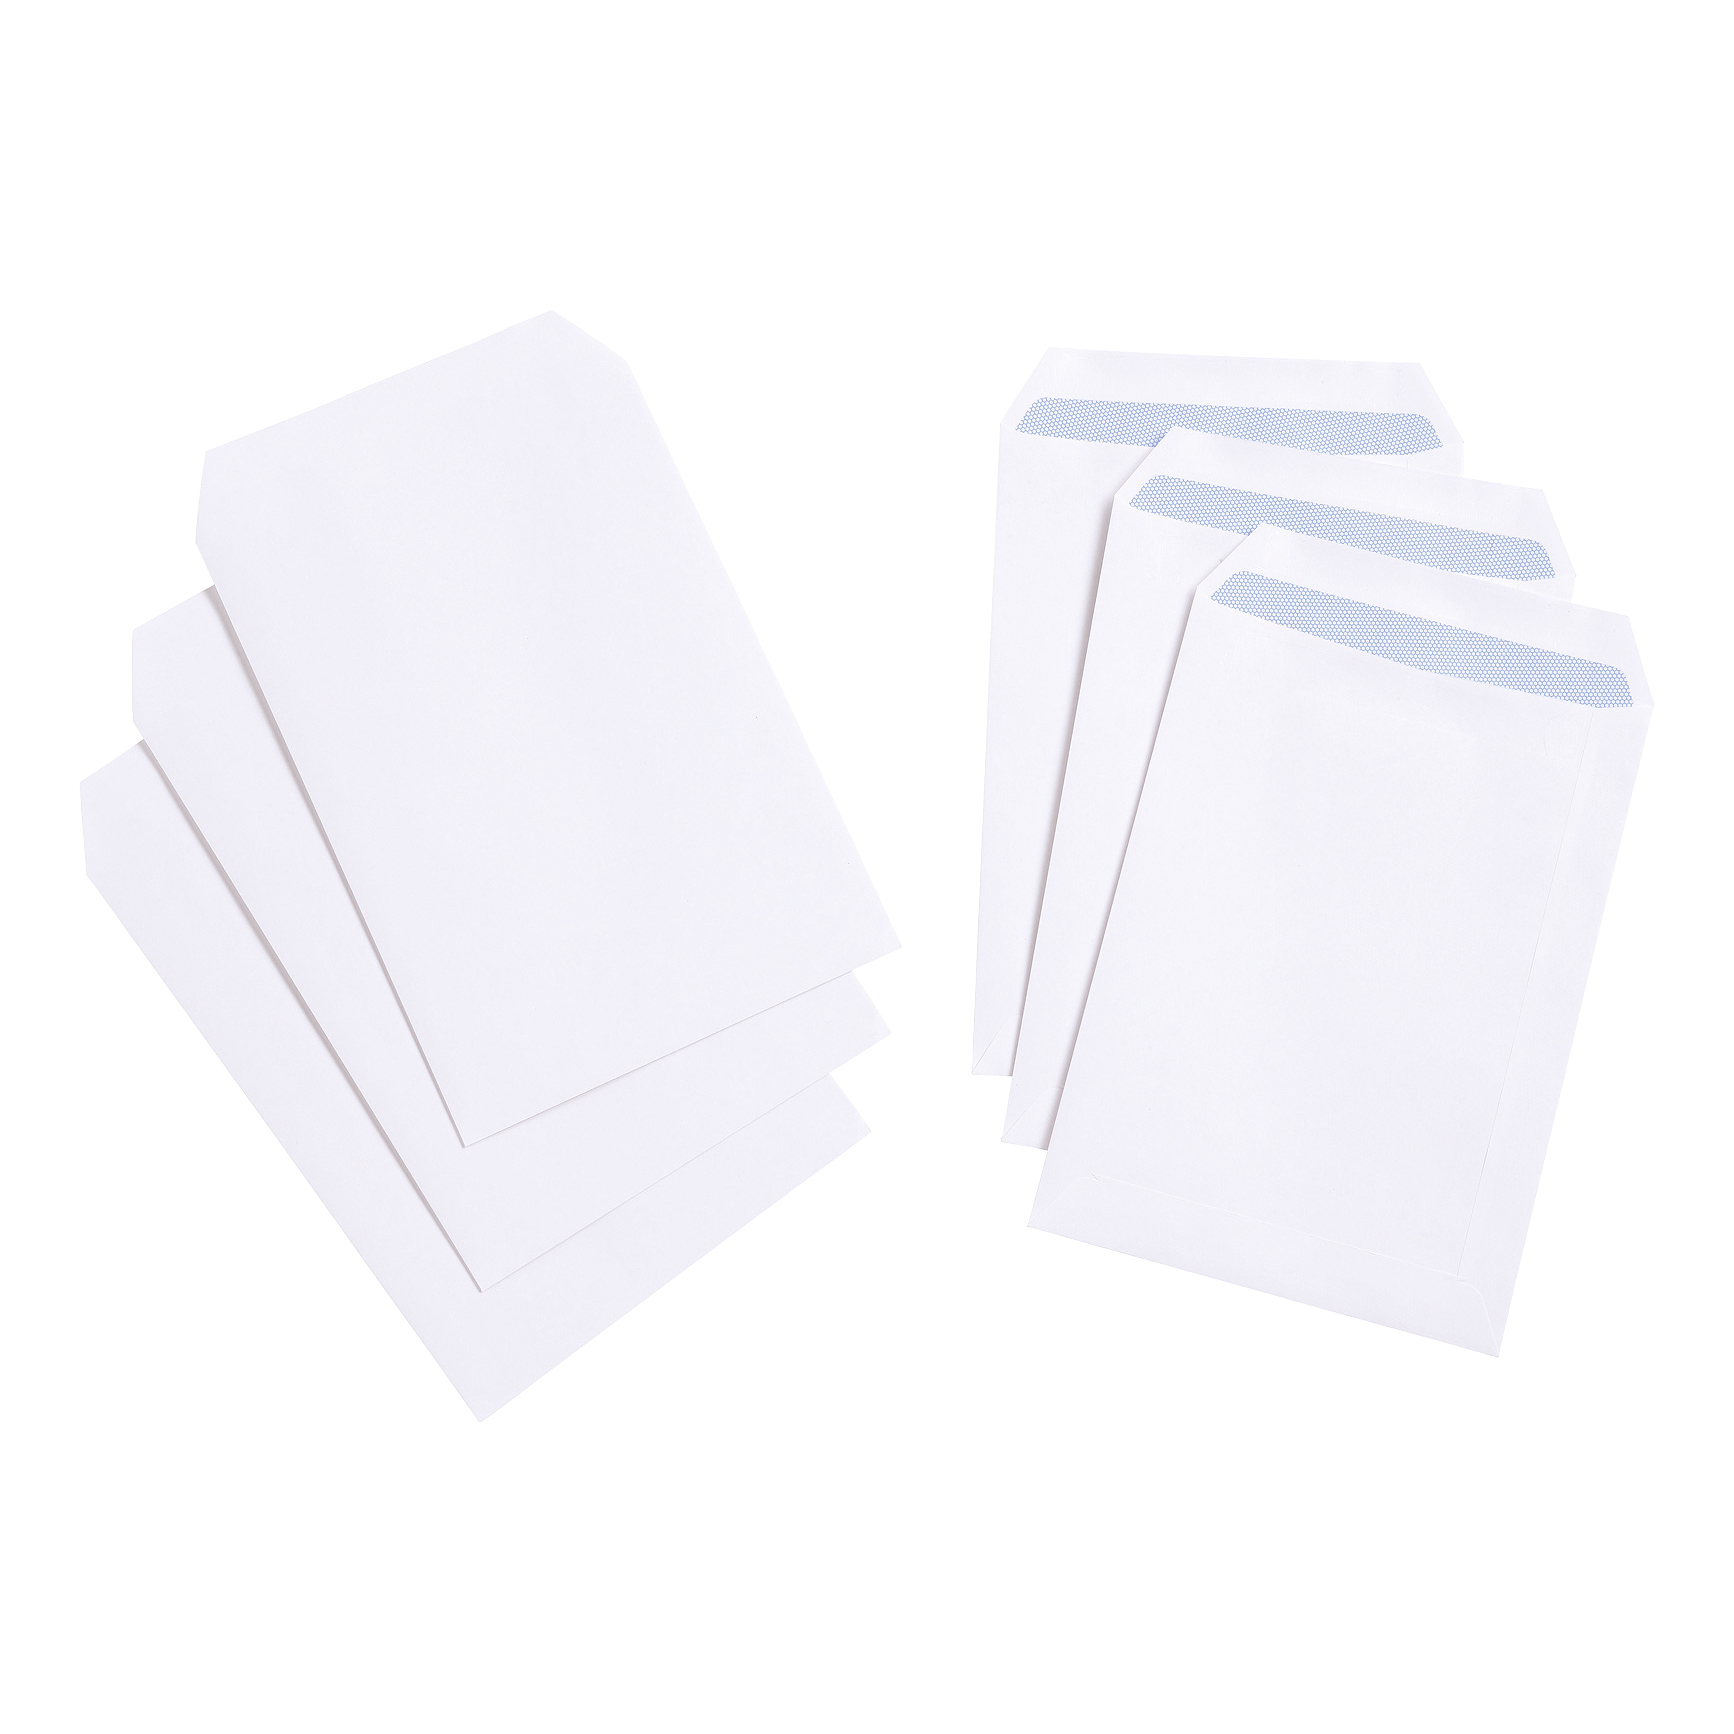 5 Star Value Envelope C5 Pocket Self Seal 90gsm White Pack 500